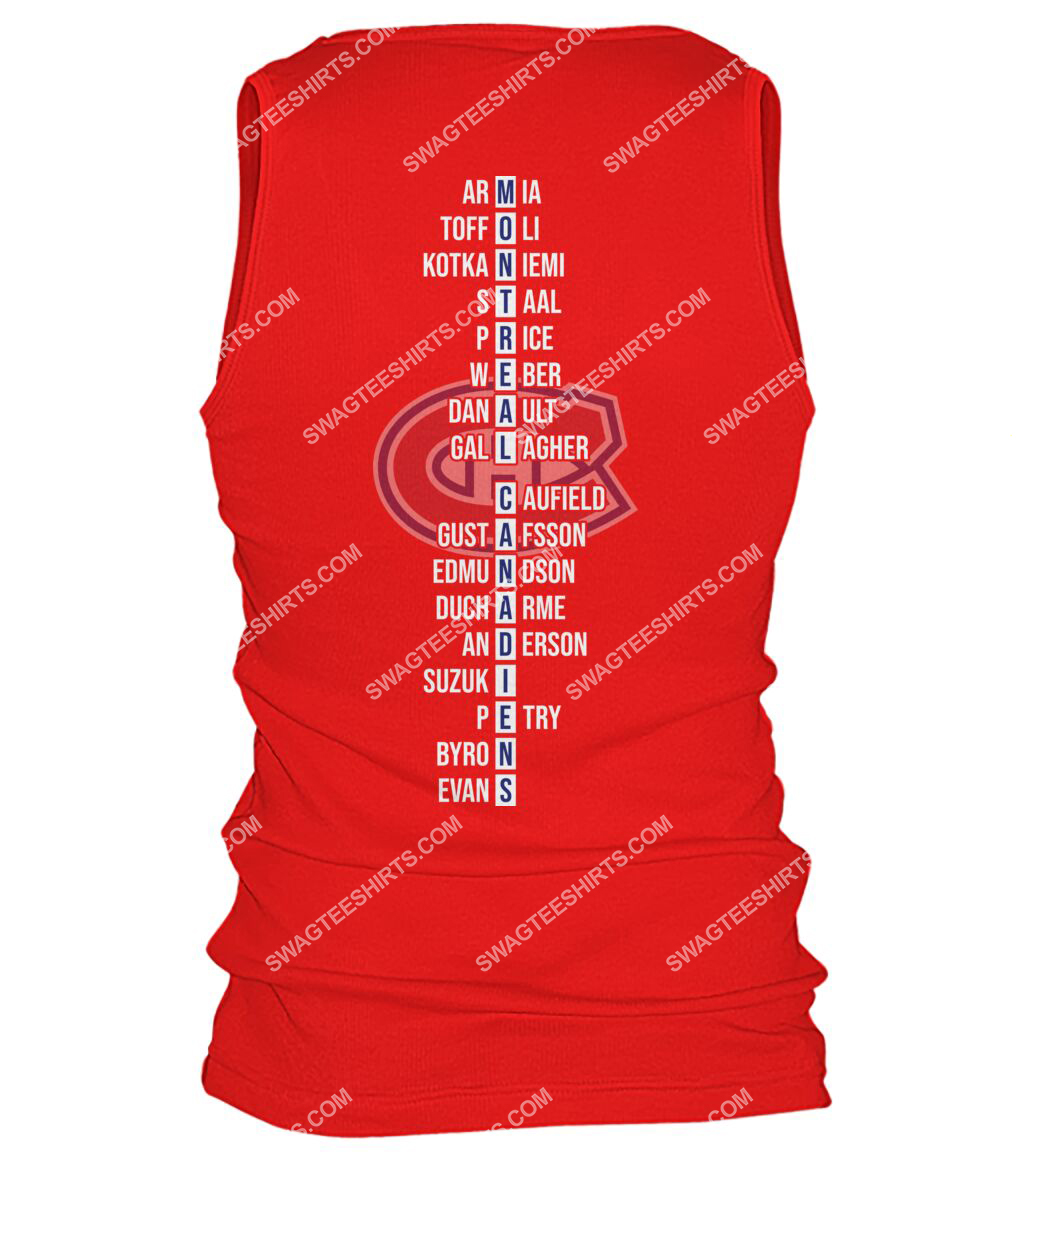 montreal canadiens 2021 north division champions tank top - back 1